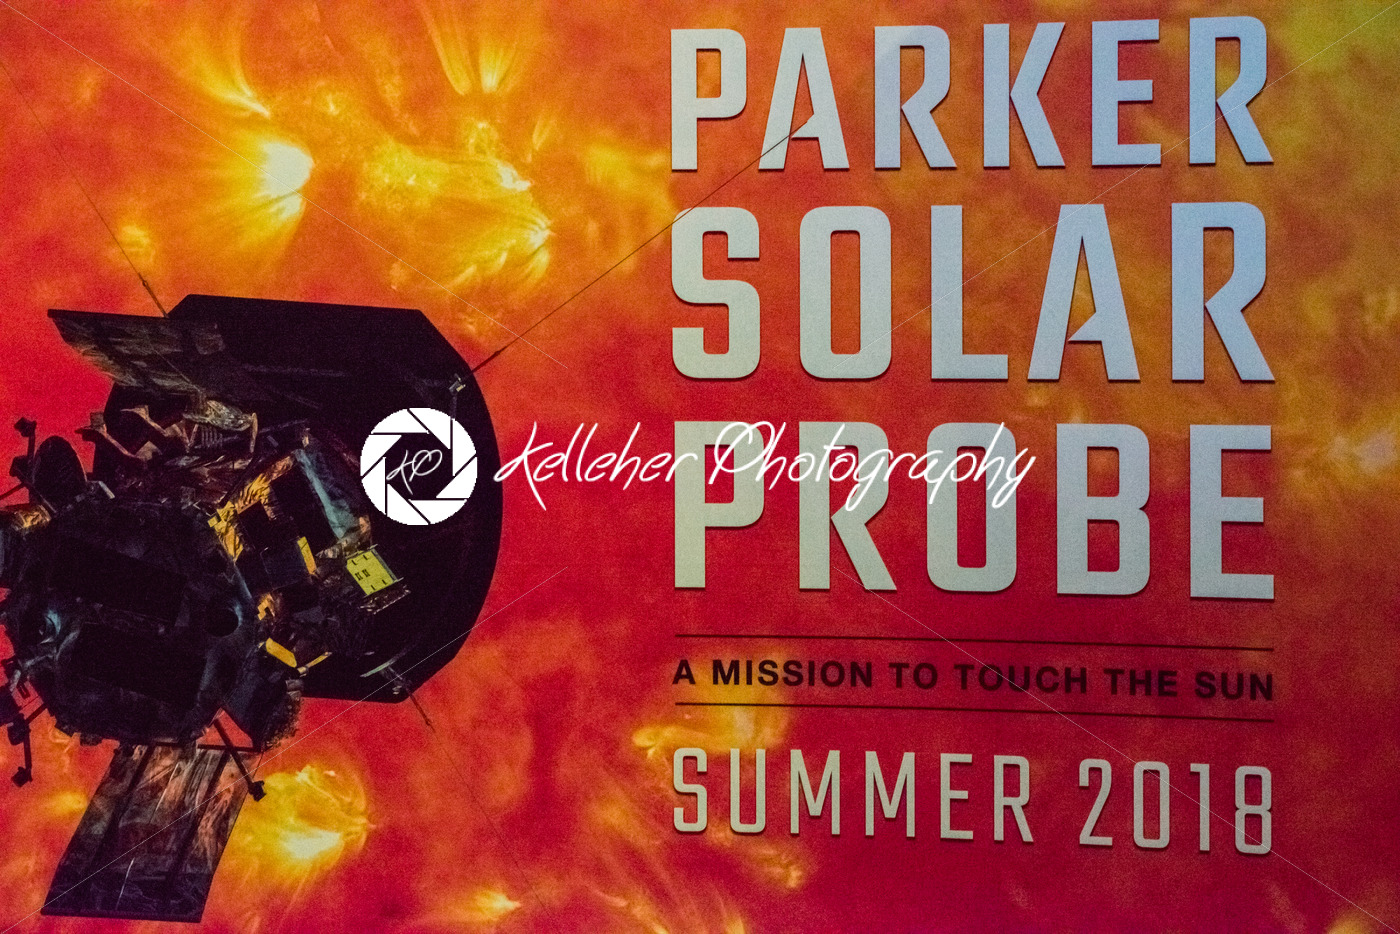 Cape Canaveral, Florida – August 13, 2018: Sign for Parker Solar Probe at NASA Kennedy Space Center - Kelleher Photography Store